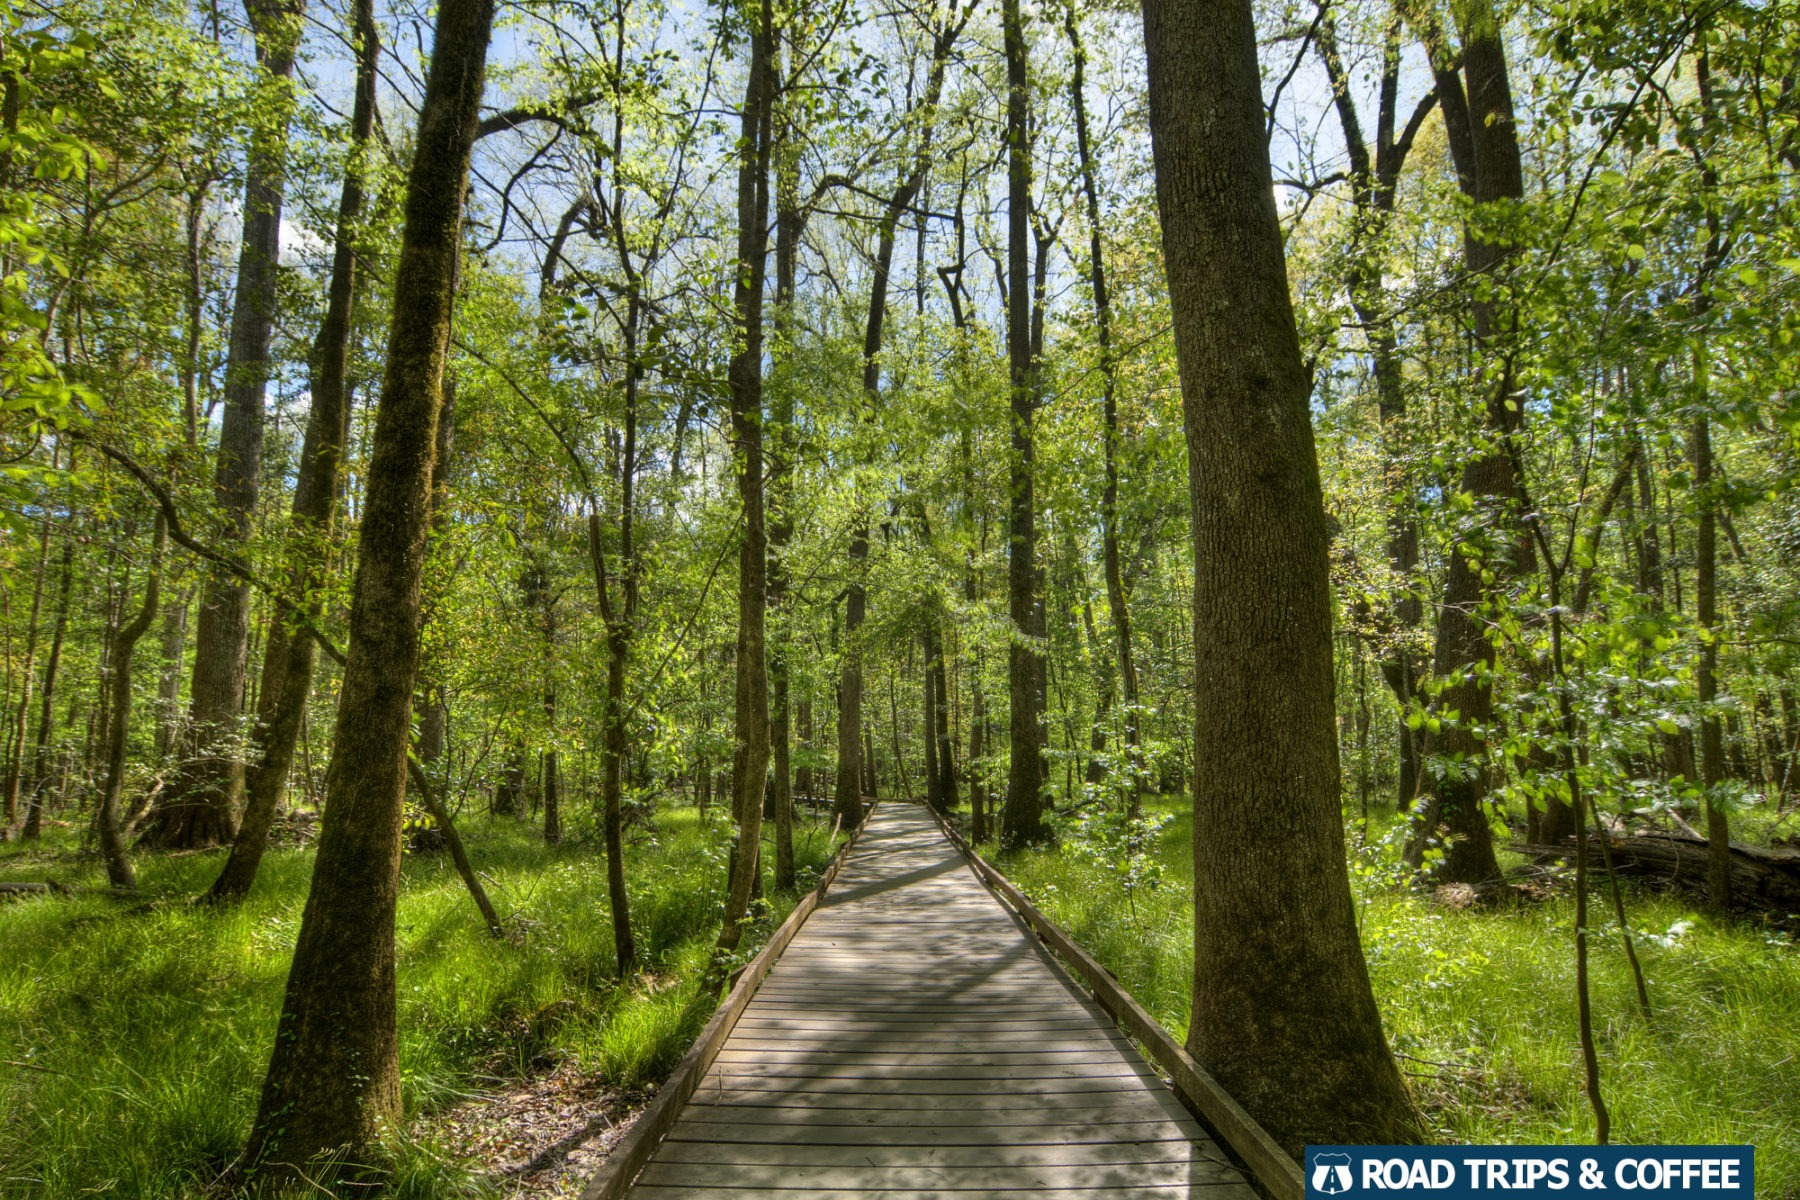 The wooden Boardwalk Loop Trail through the tall trees of Congaree National Park in South Carolina